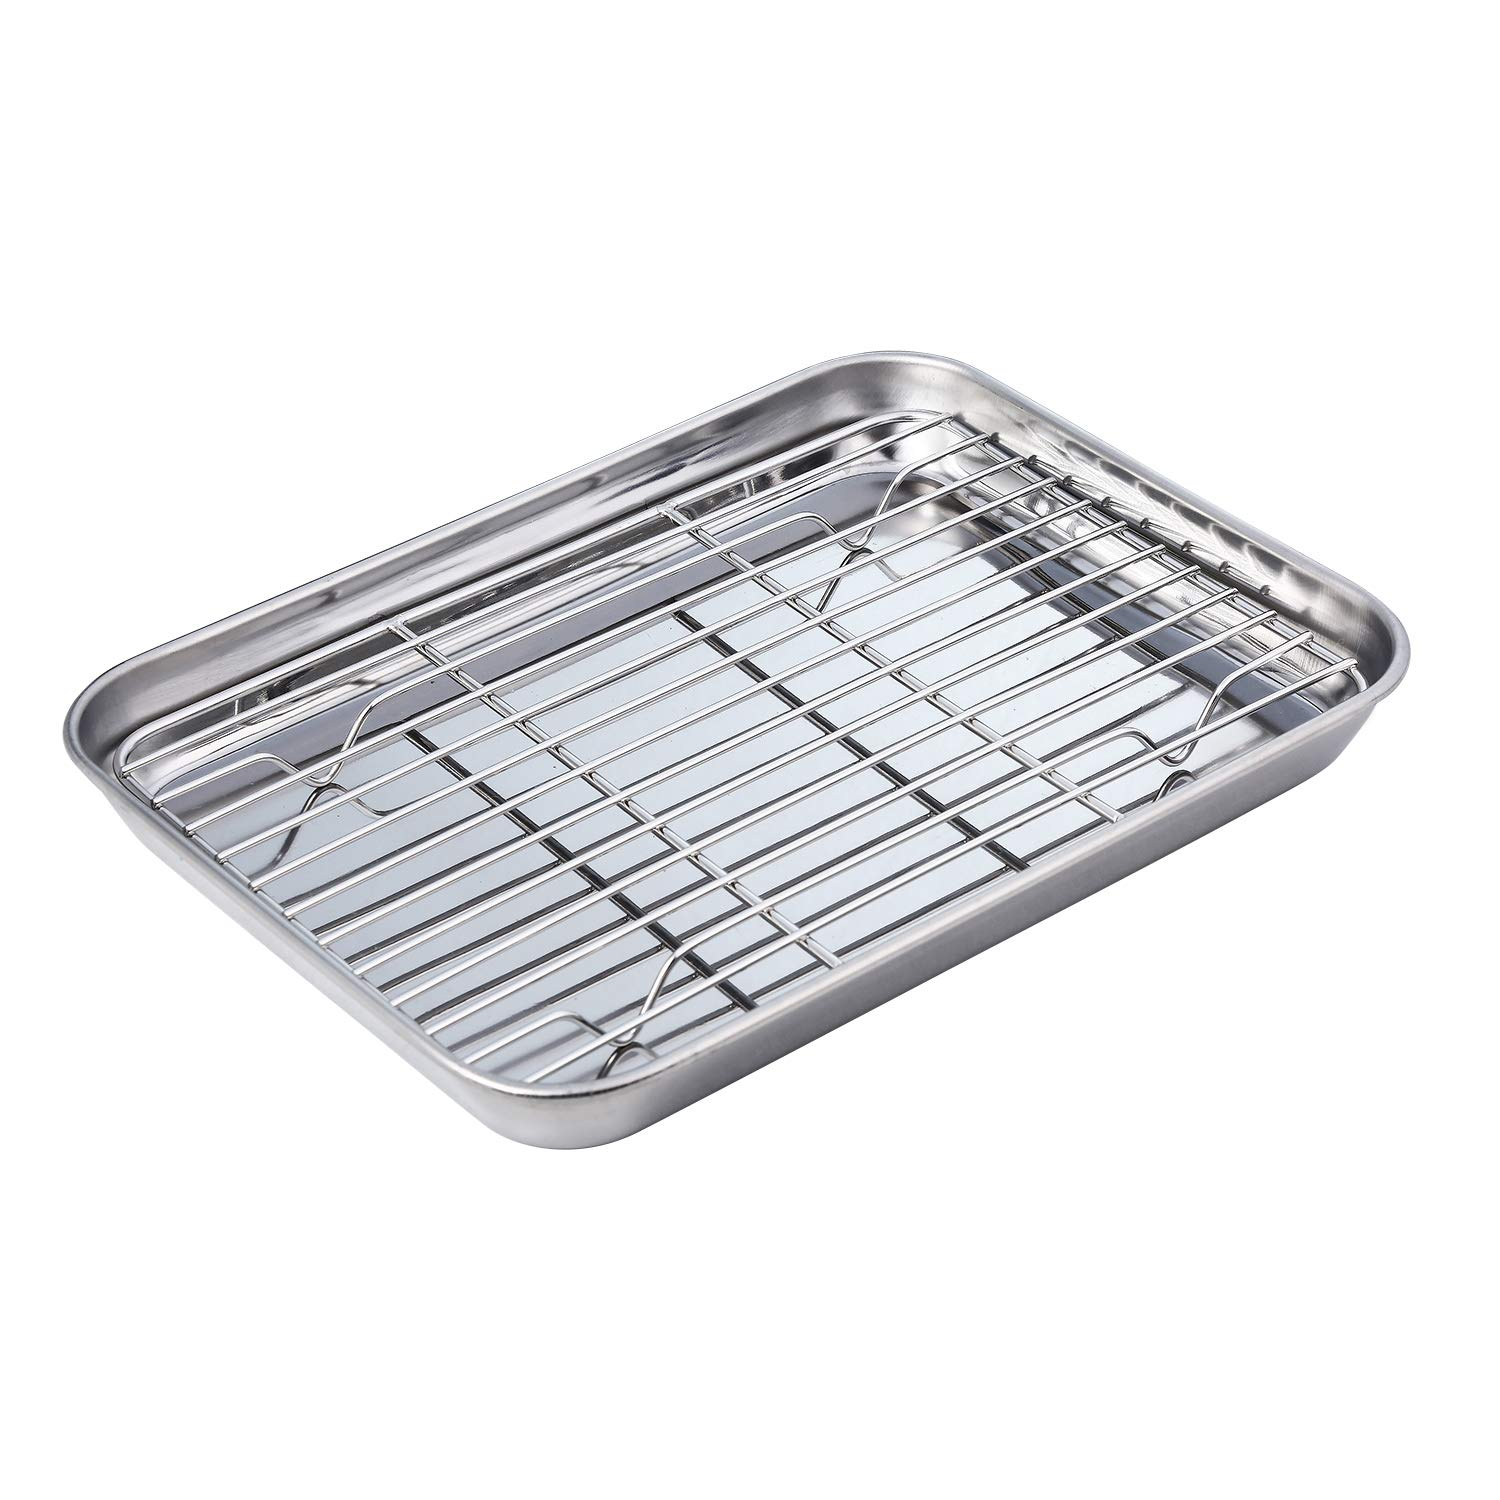 Baking Sheet with Rack Set, Stainless Steel Tray Cookie Sheet Toaster Oven Pan (Size 10 1/2 x 8 x 1 inch, Non Toxic & Healthy, Rust Free & Less Stick, Thick & Sturdy, Easy Clean & Dishwasher Safe)